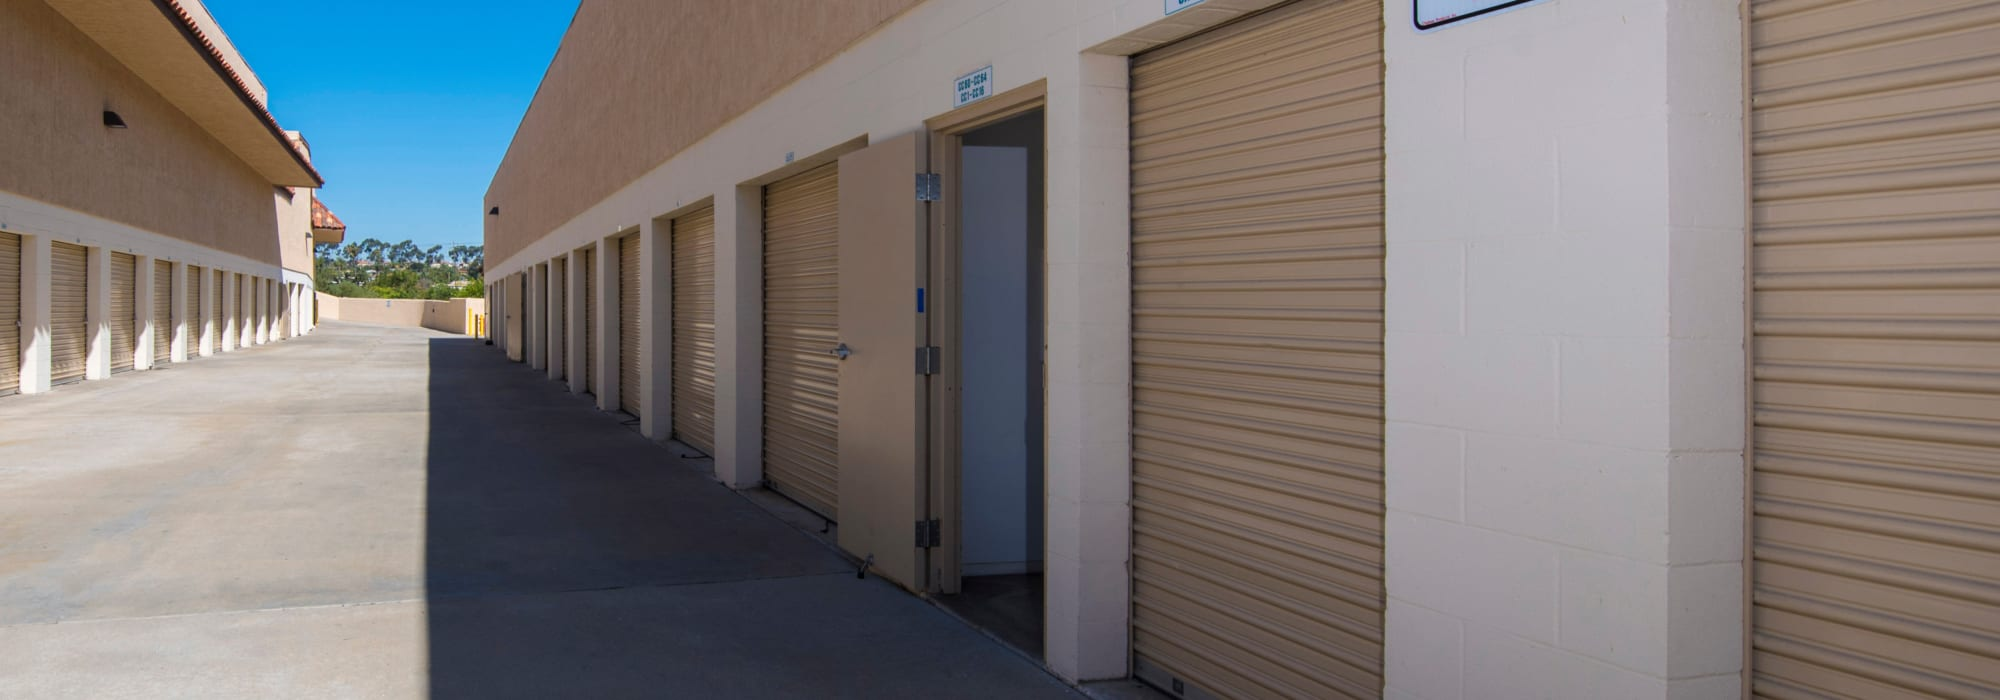 Outdoor units at National/54 Self Storage in National City, California